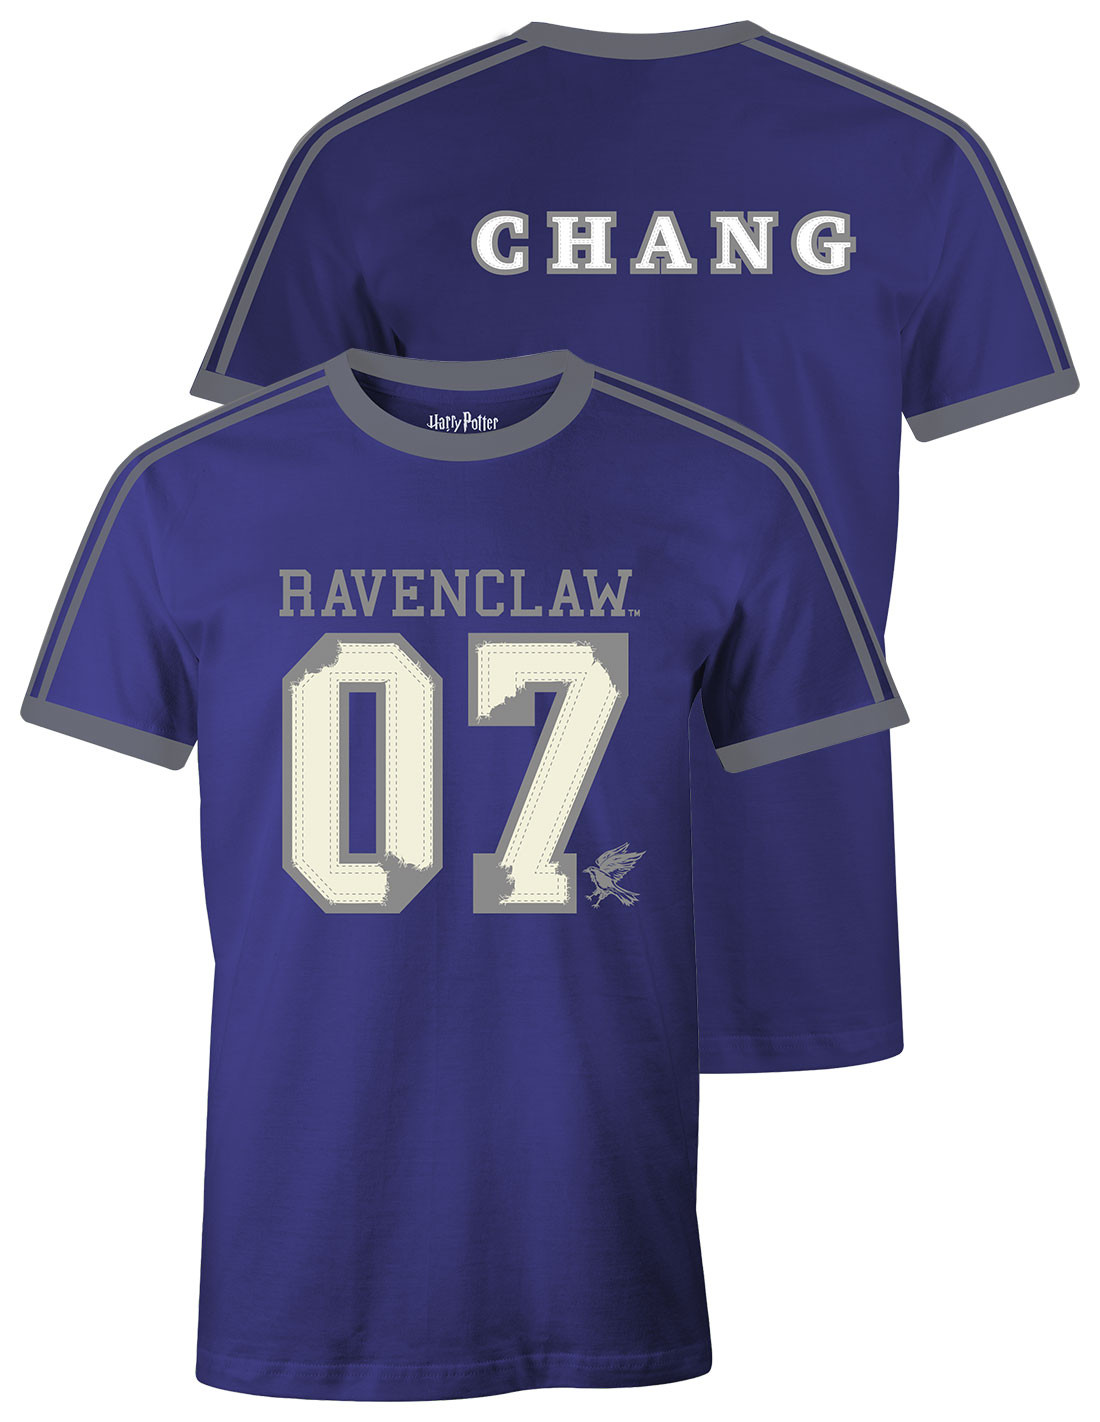 t-shirt-harry-potter-ravenclaw-chang